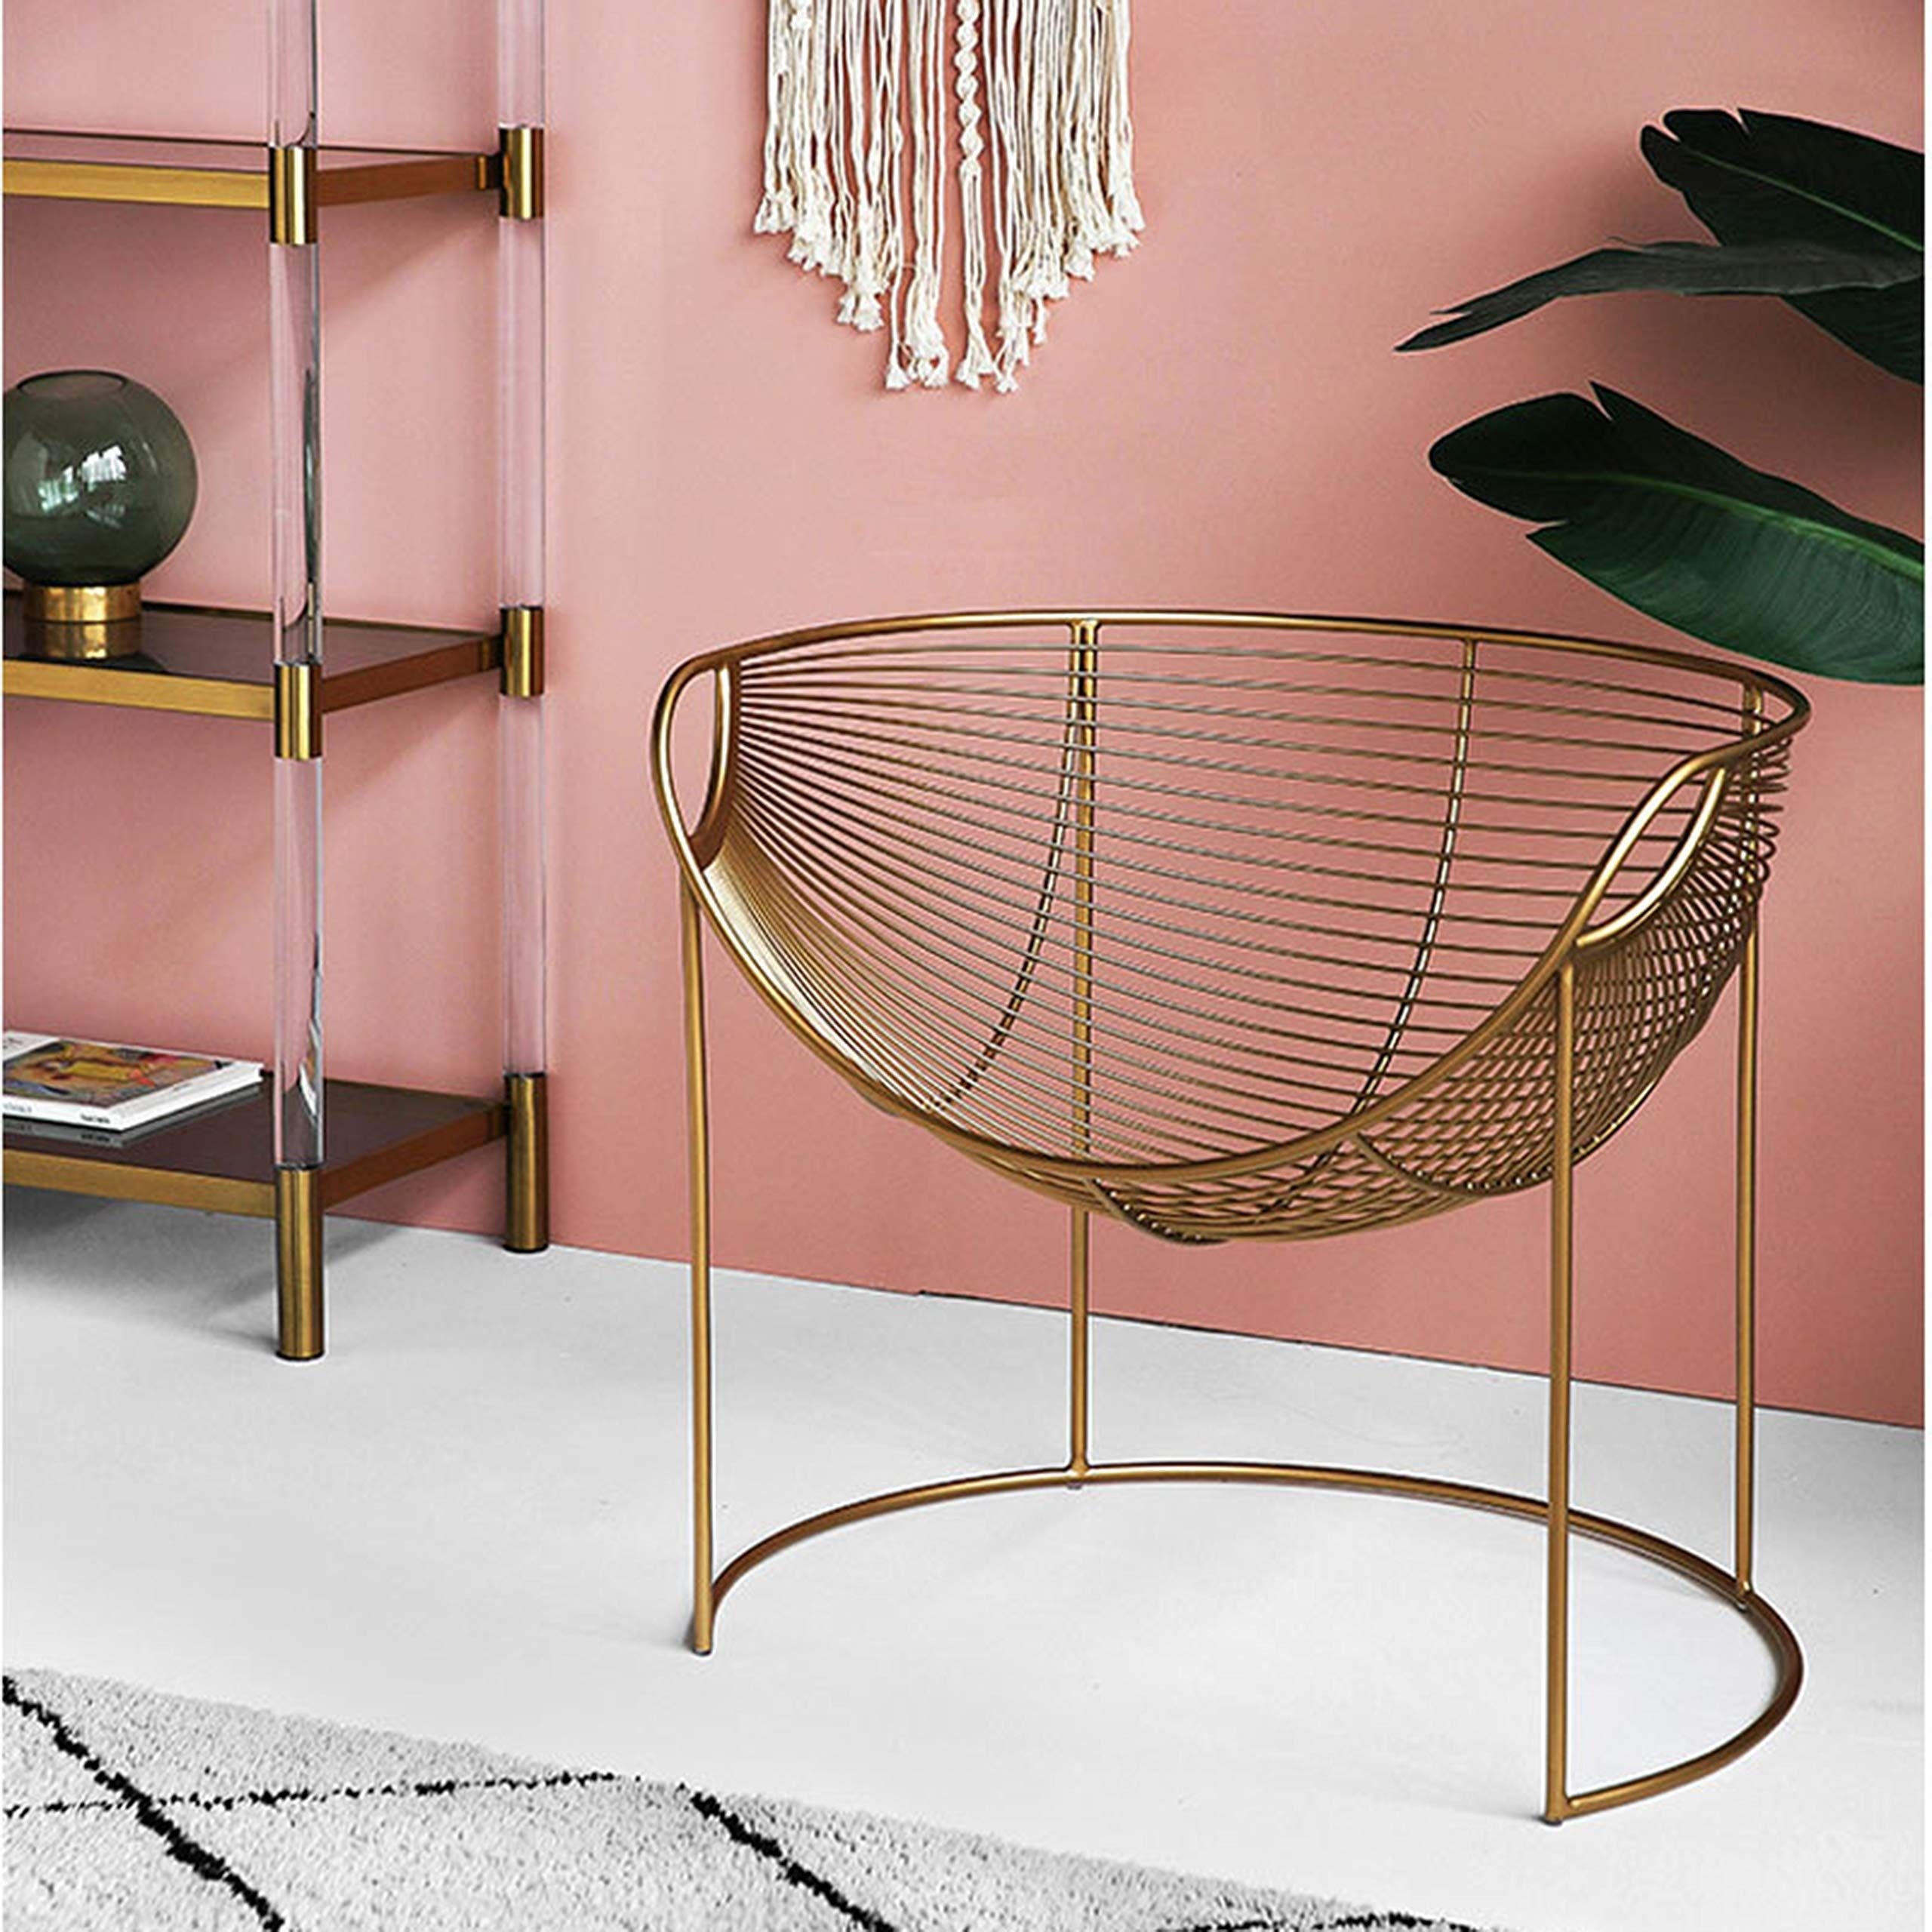 Anyer metal hollow chair creative personality gold iron